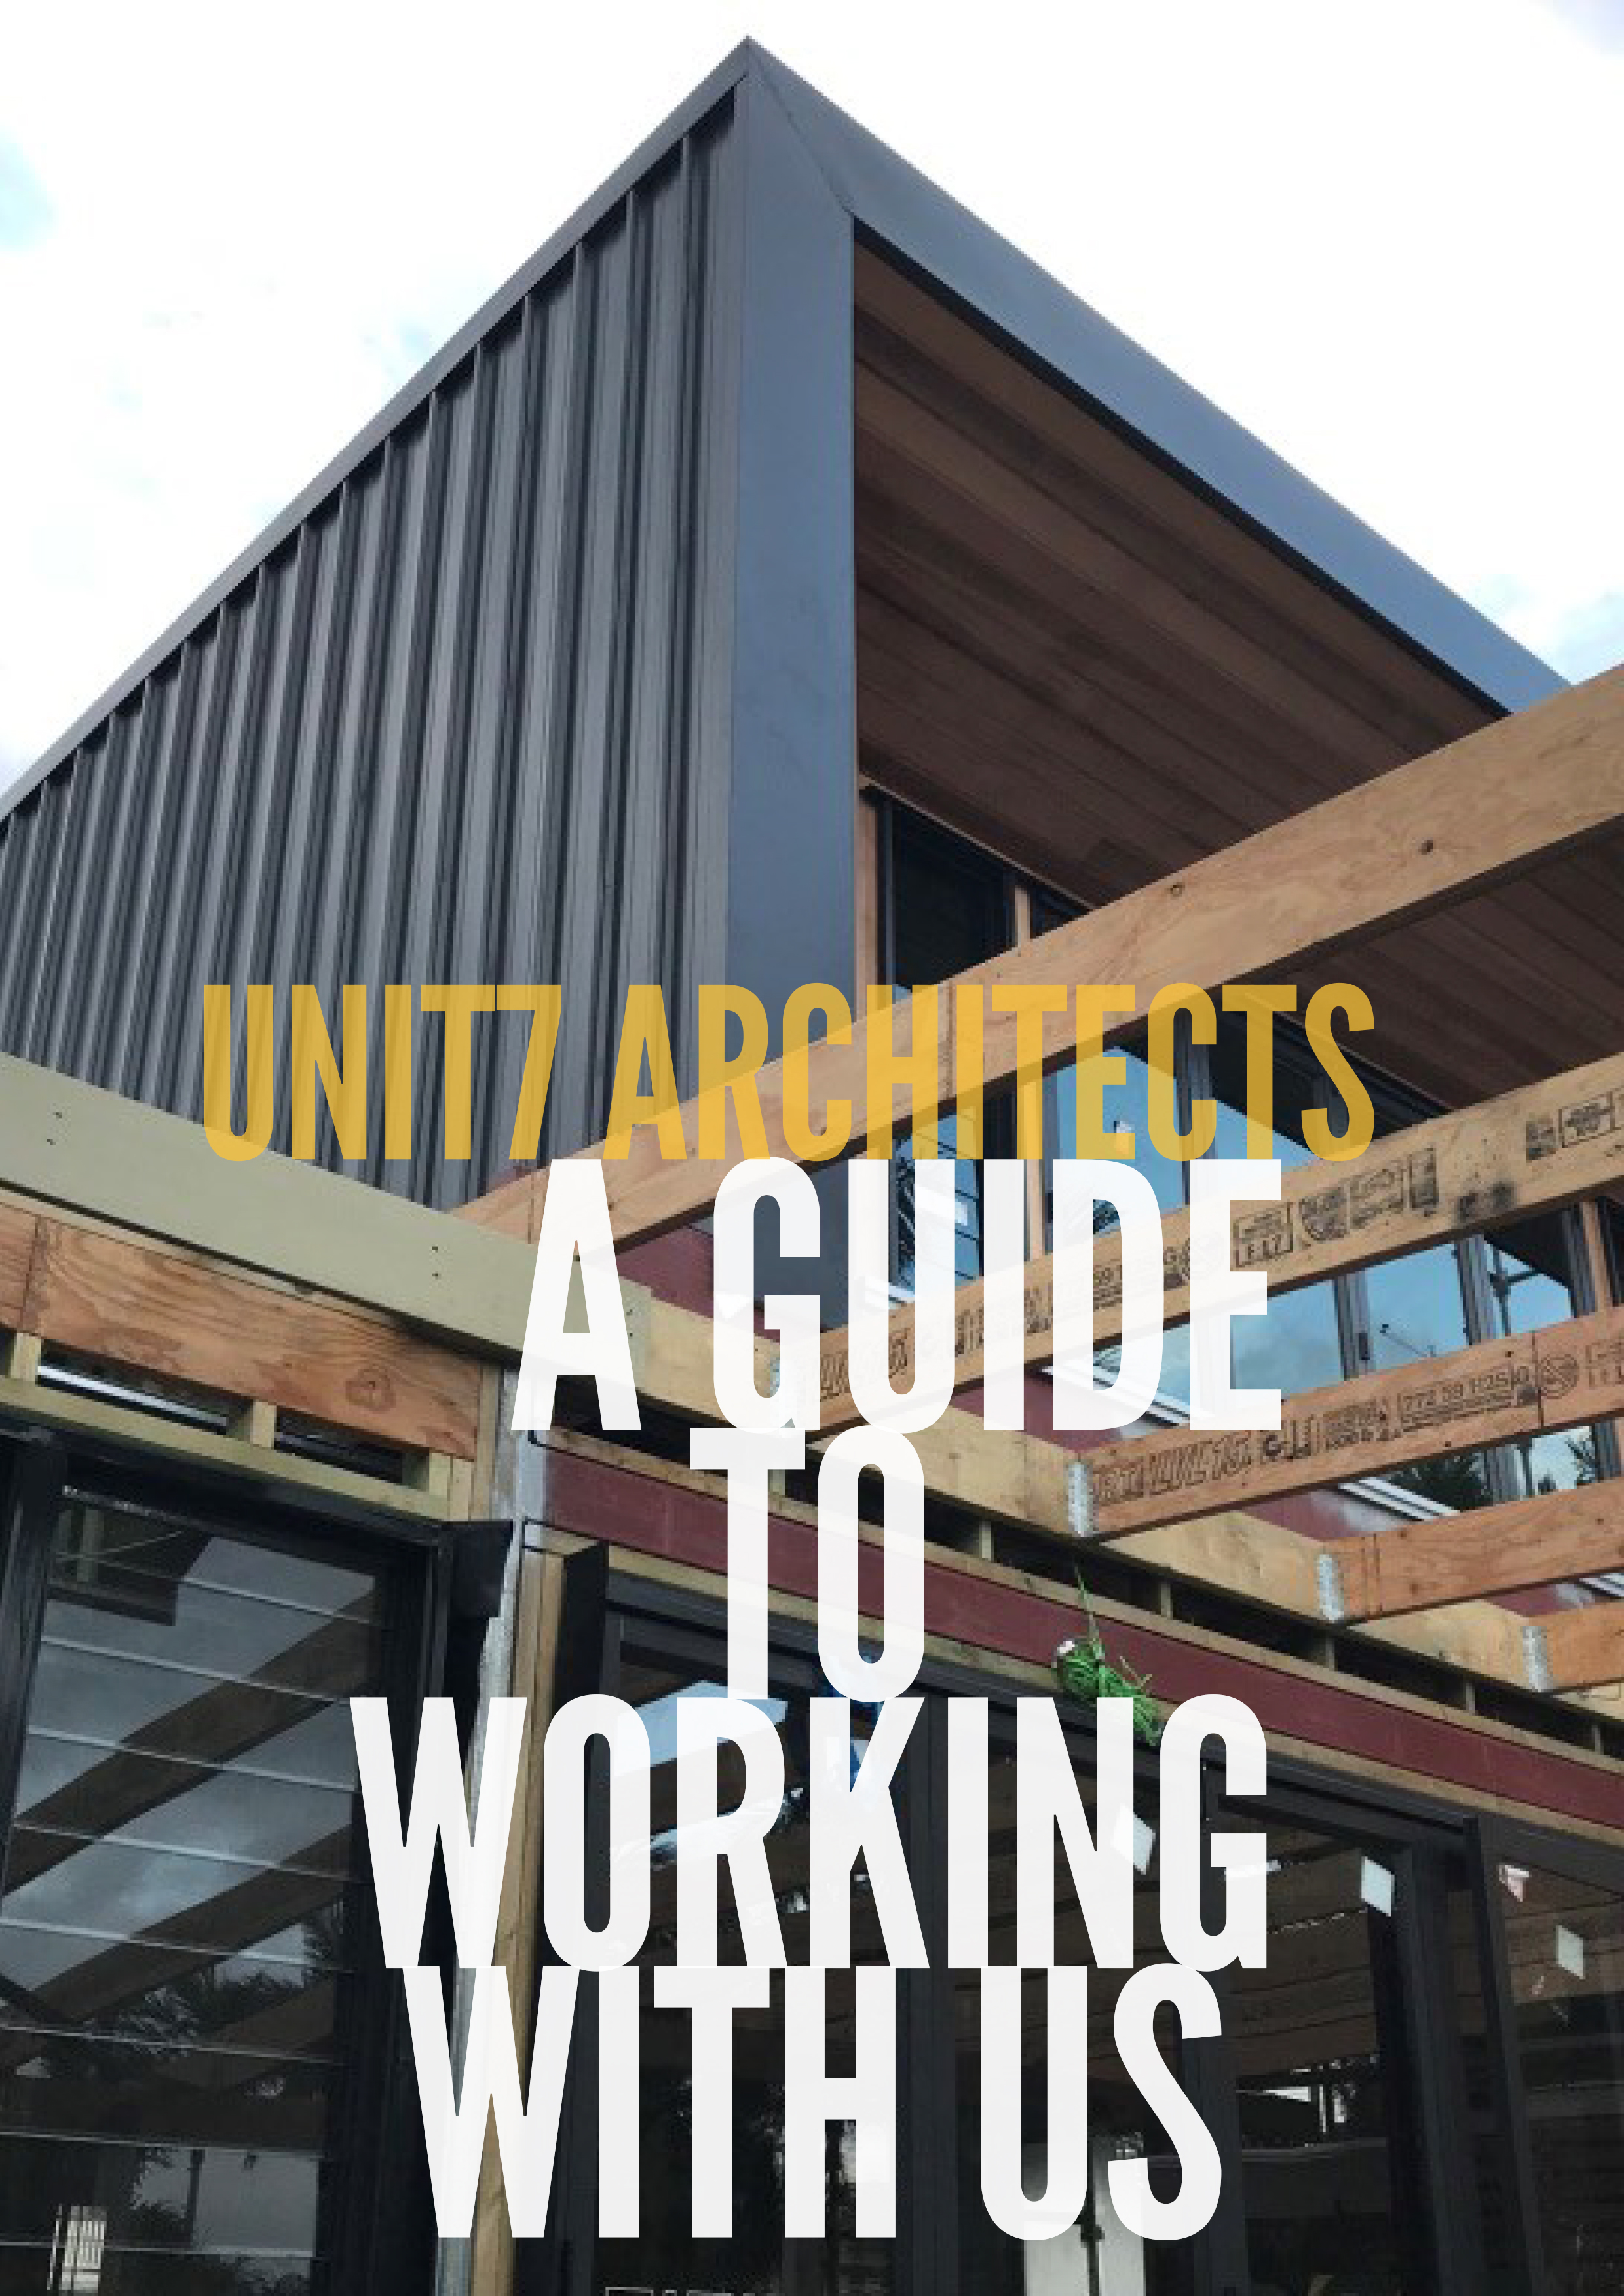 FREE DOWNLOAD! - HERE'S A BOOKLET YOU CAN DOWNLOAD OUTLINING THE PROCESS OF WORKING WITH US.HERE'S MORE INFORMATION ABOUT WORKING WITH ARCHITECTS FROM THE NZIA WEBSITE.